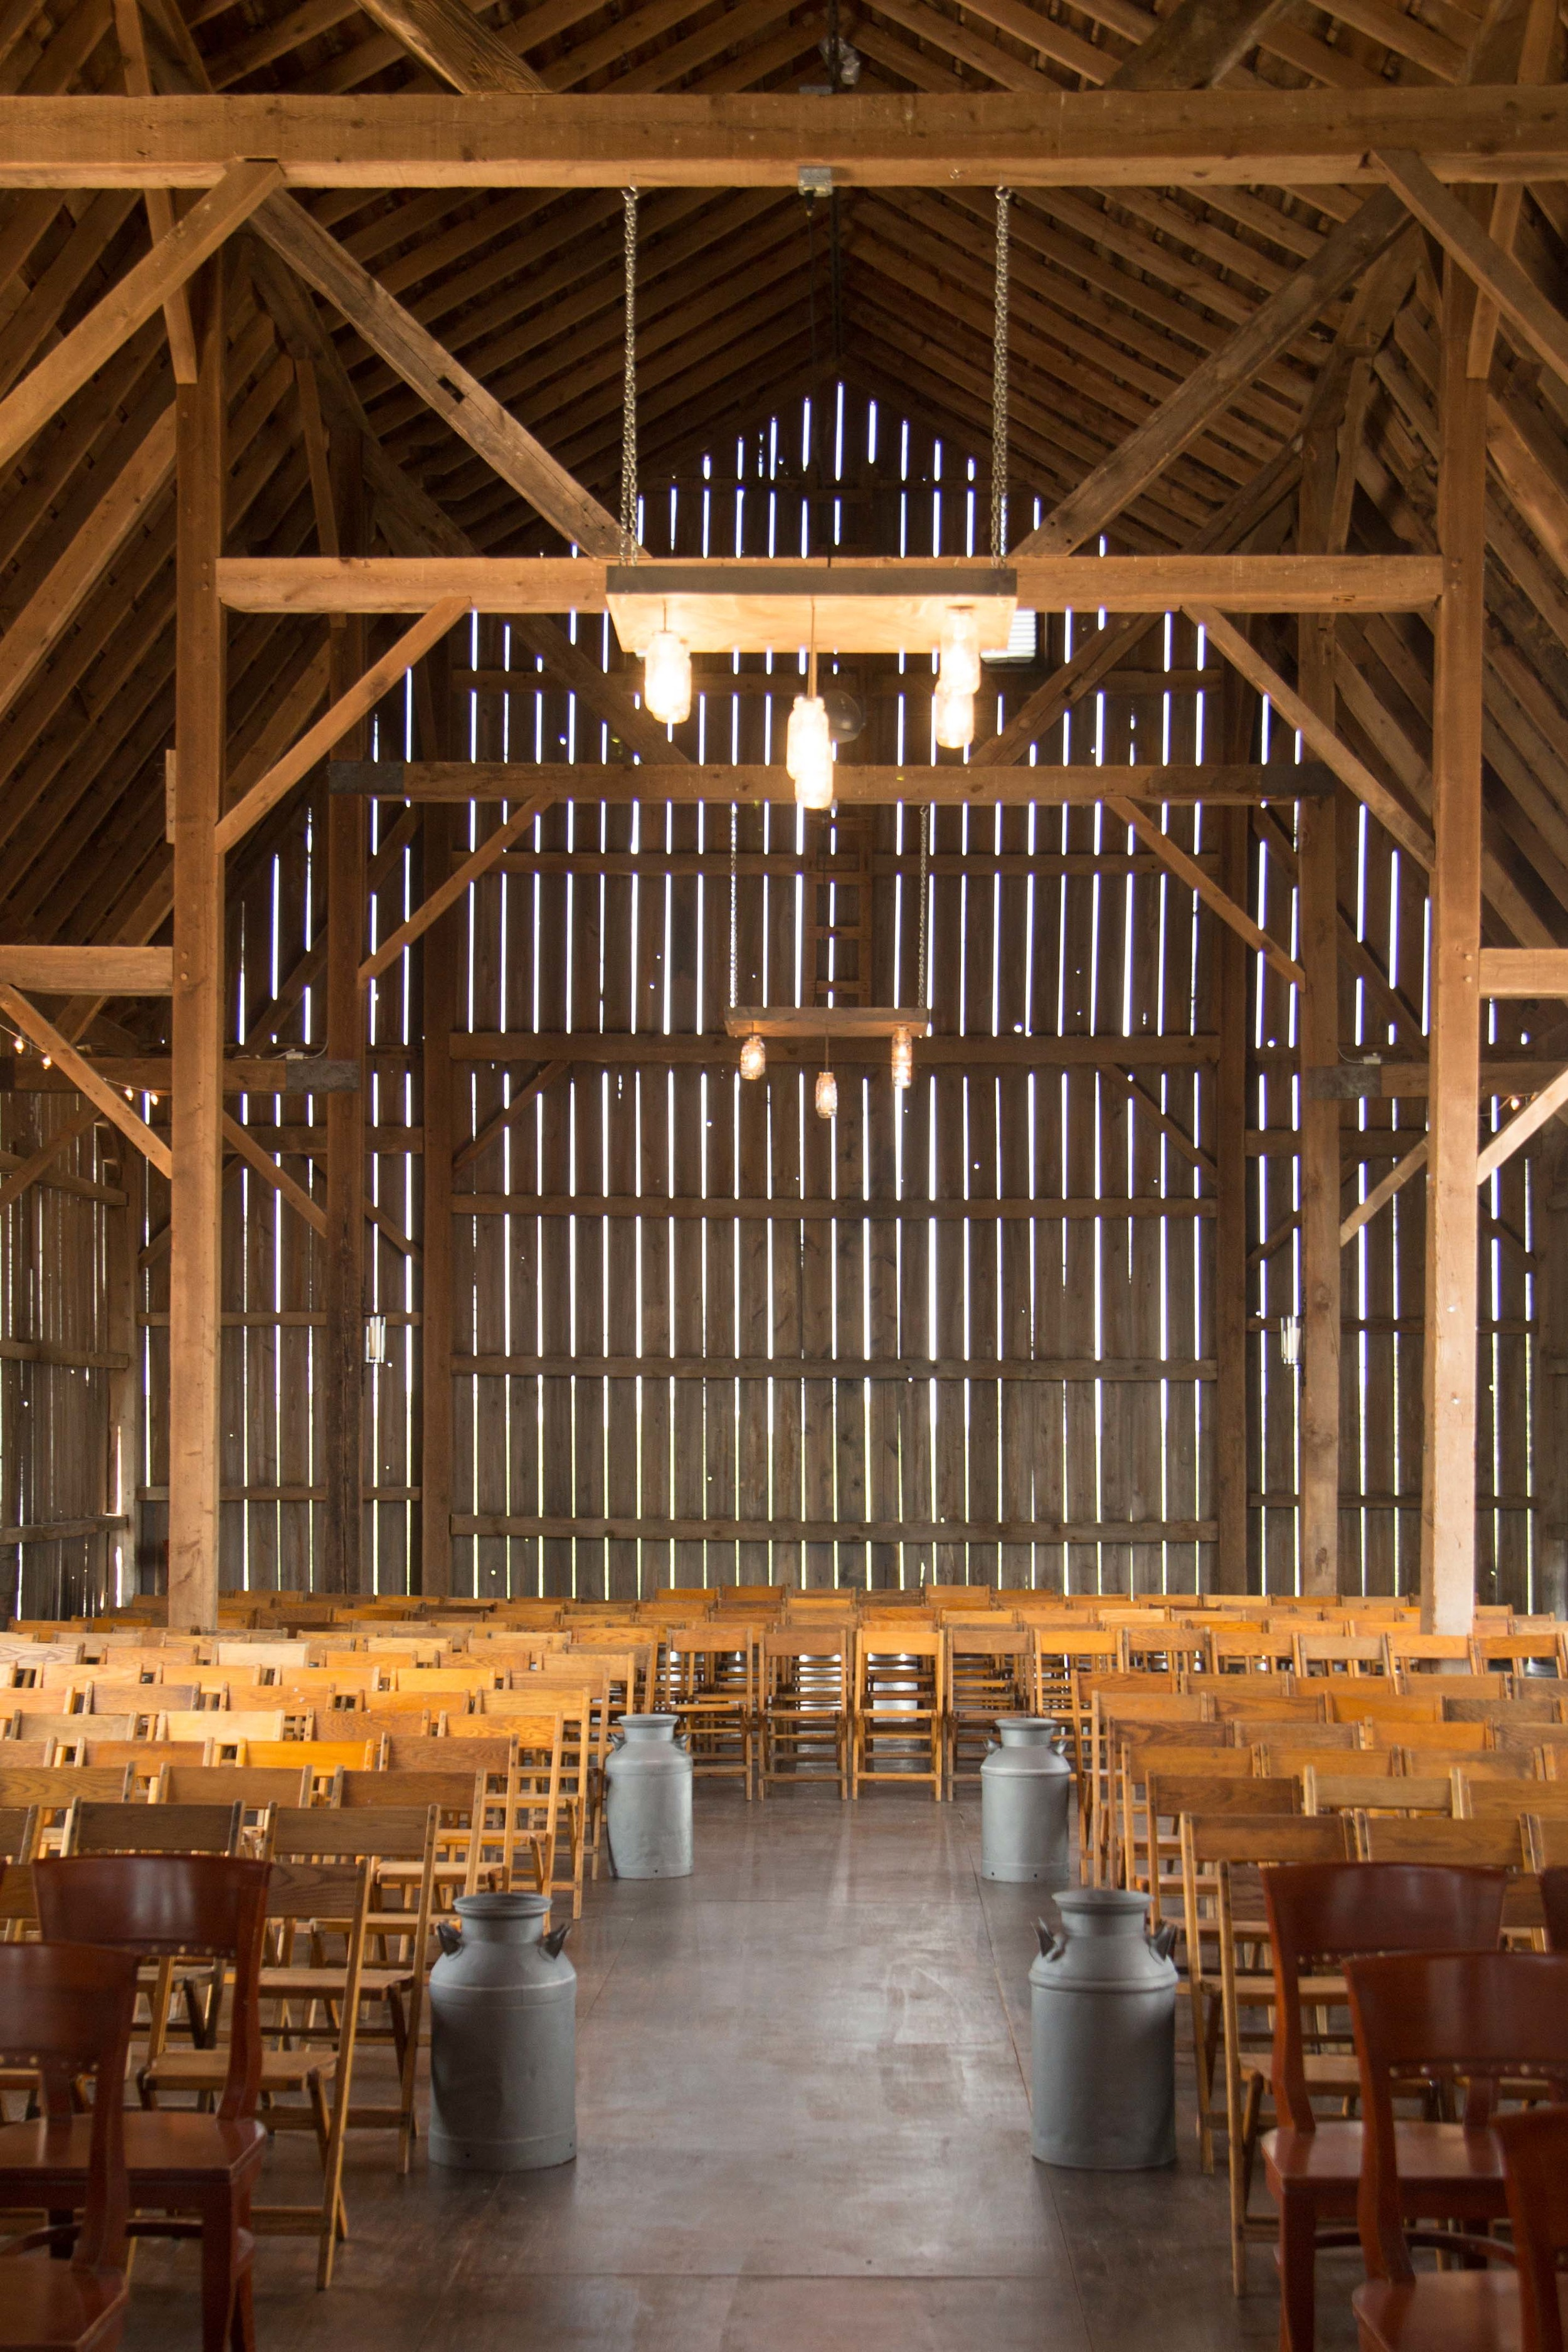 8_14-Barn_Ceremony_chair_Setup_5531 2.jpg